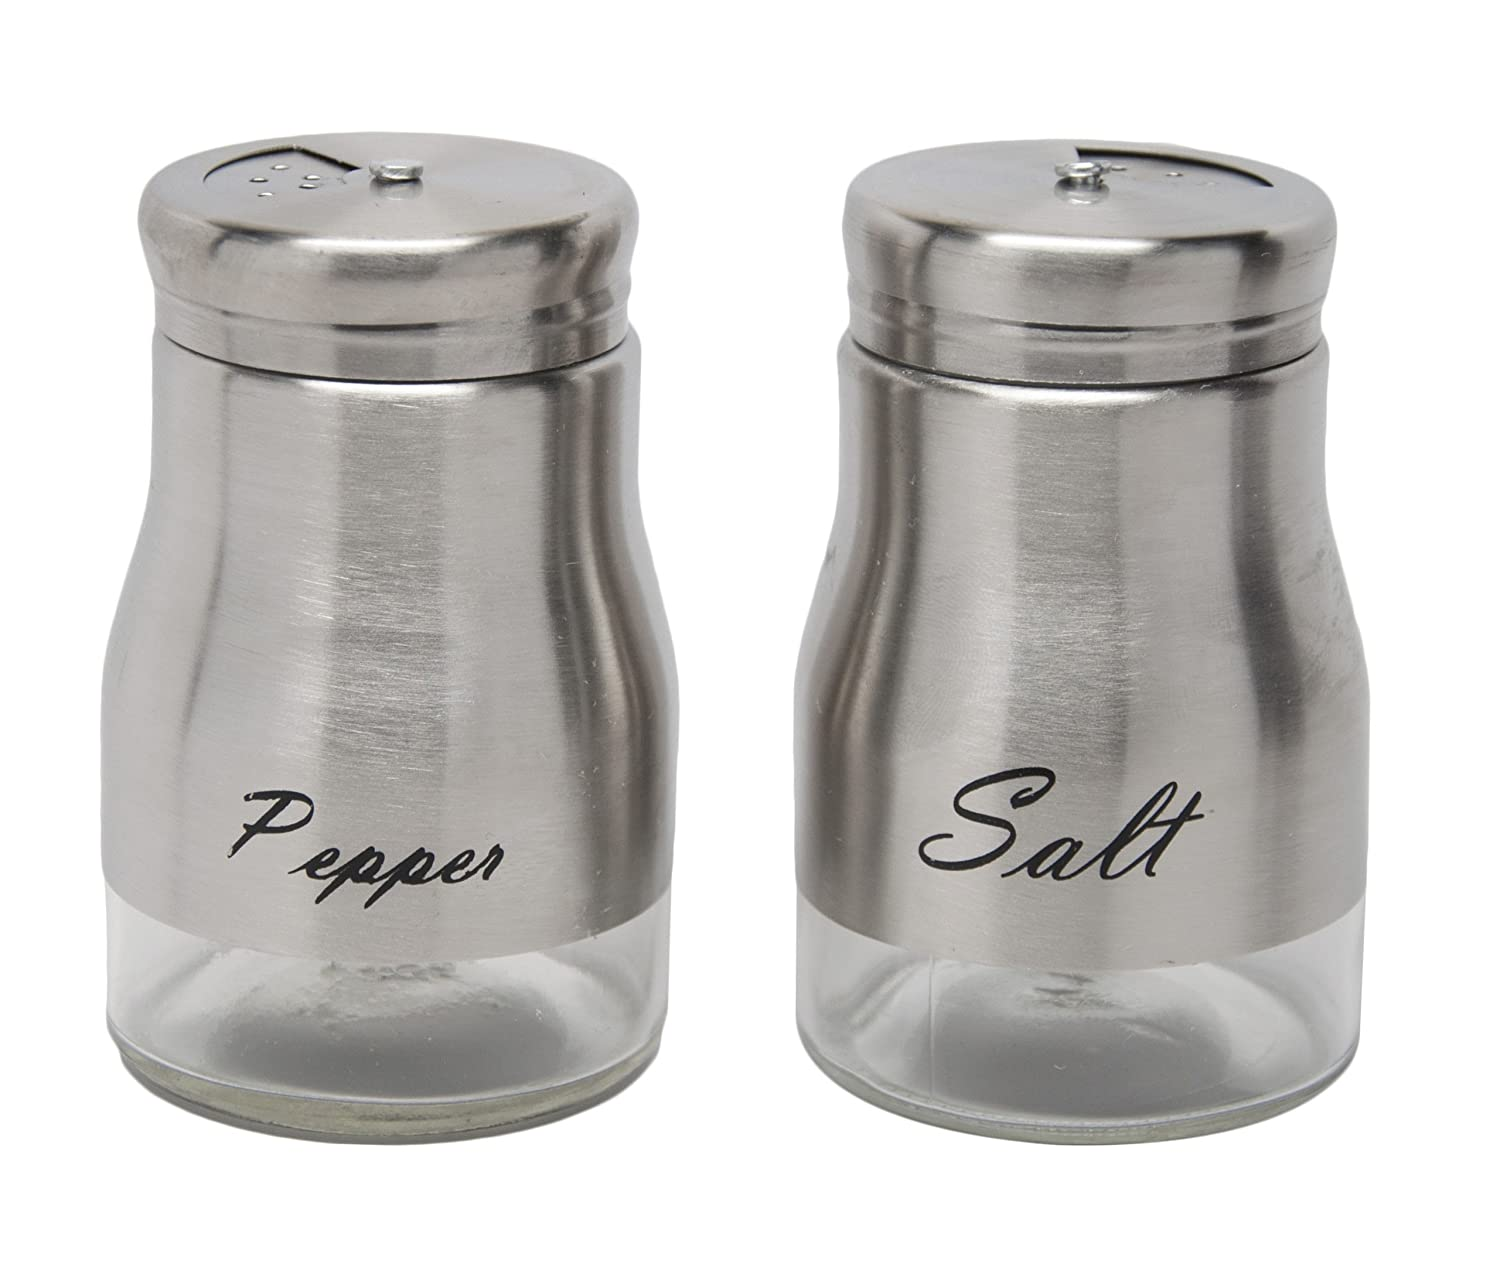 Stainless Steel Round Salt and Pepper Shakers With Stand Seasoning Shakers Set Spice Shaker Set Xena